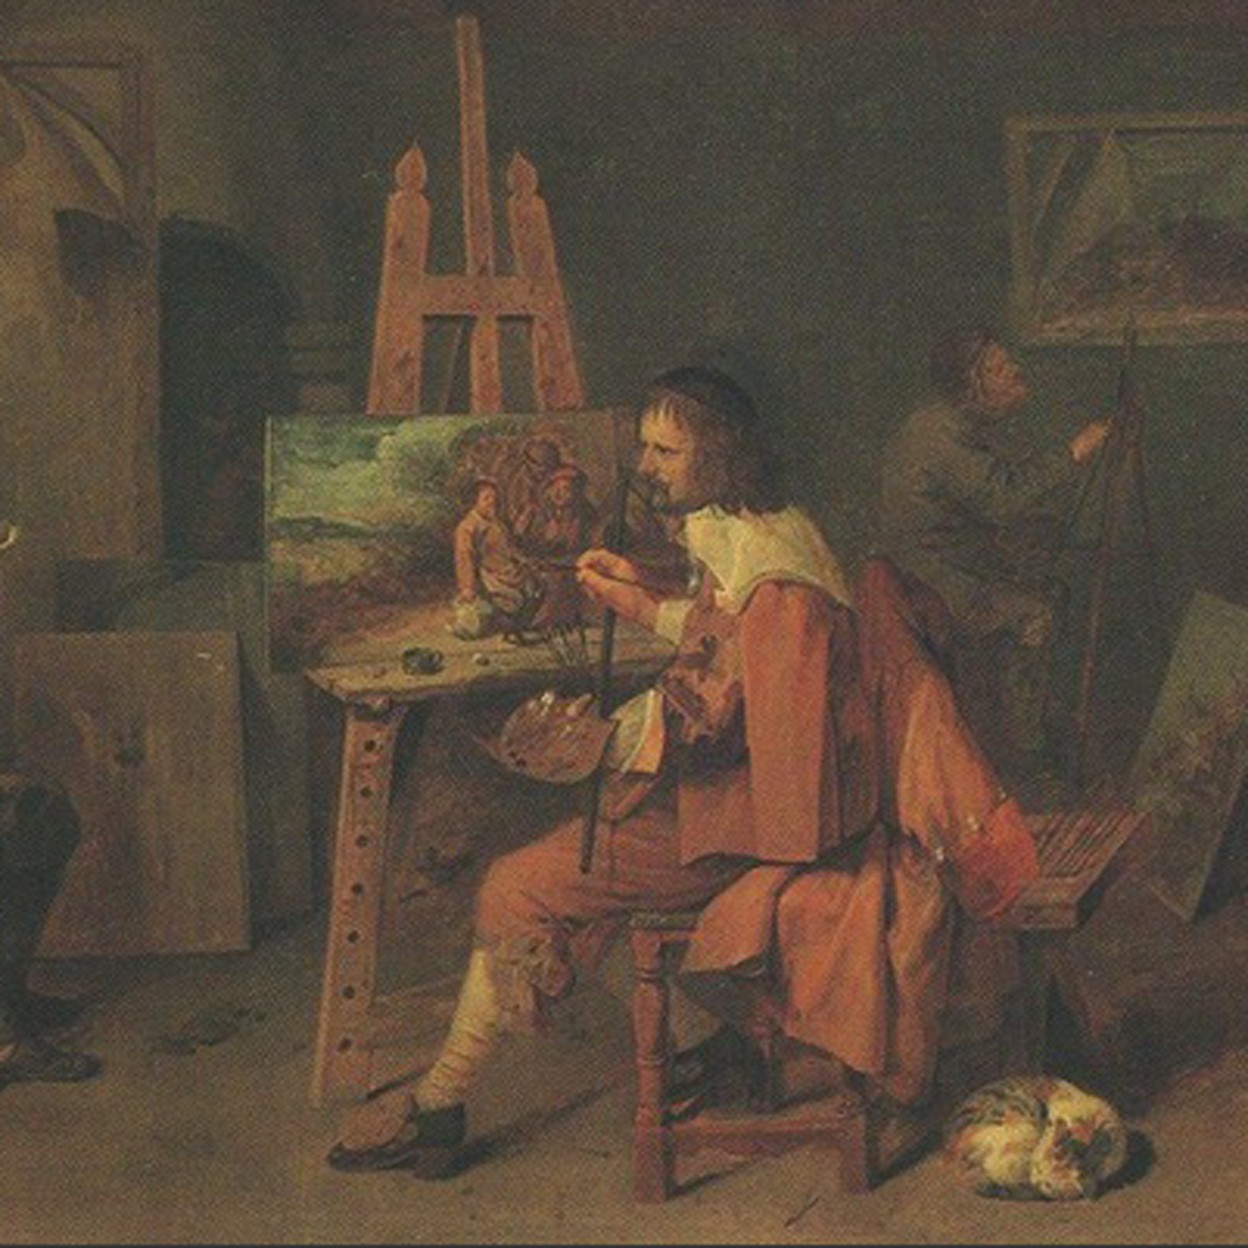 Old Masters Painters: Methods, Materials and Interventions - London